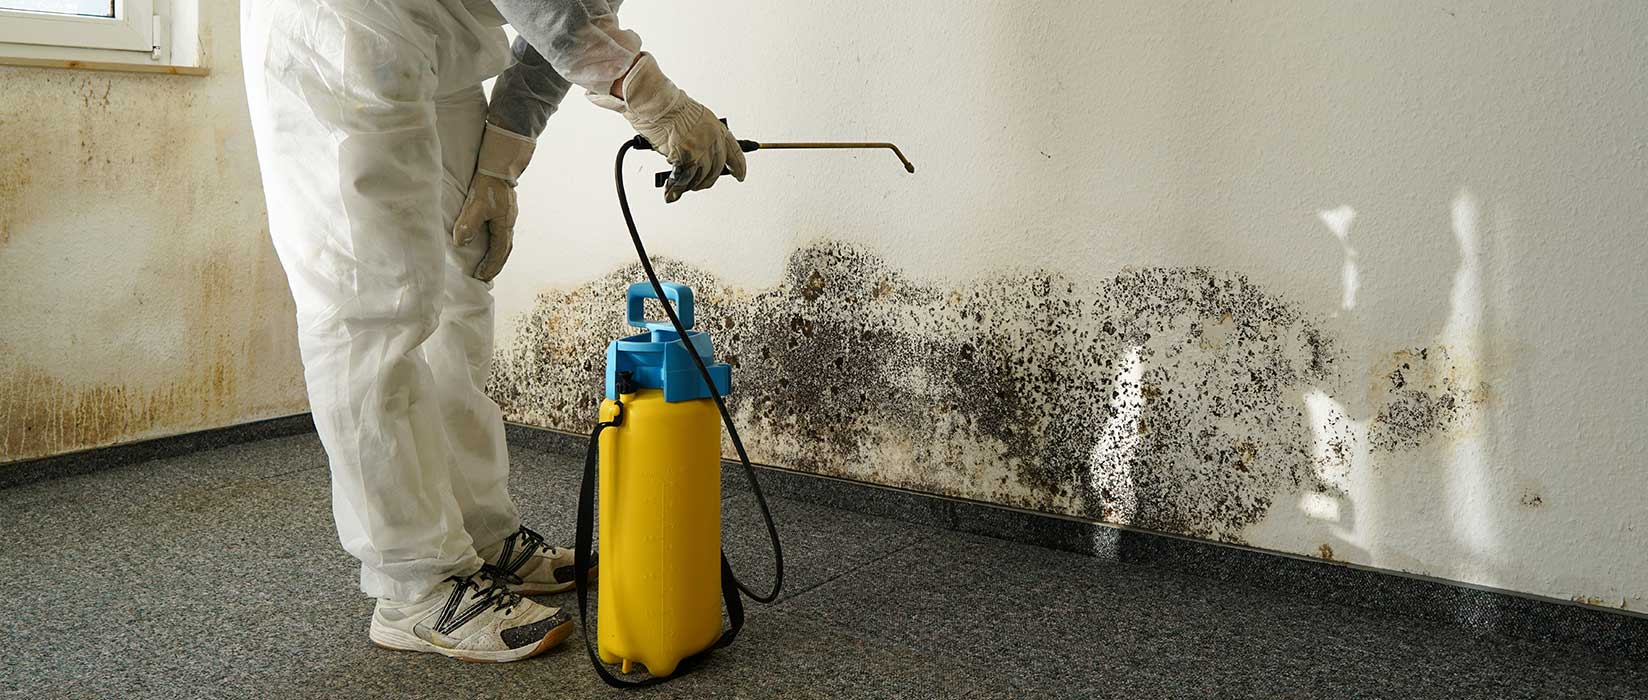 Spotting and Dealing with Mold in Your Home